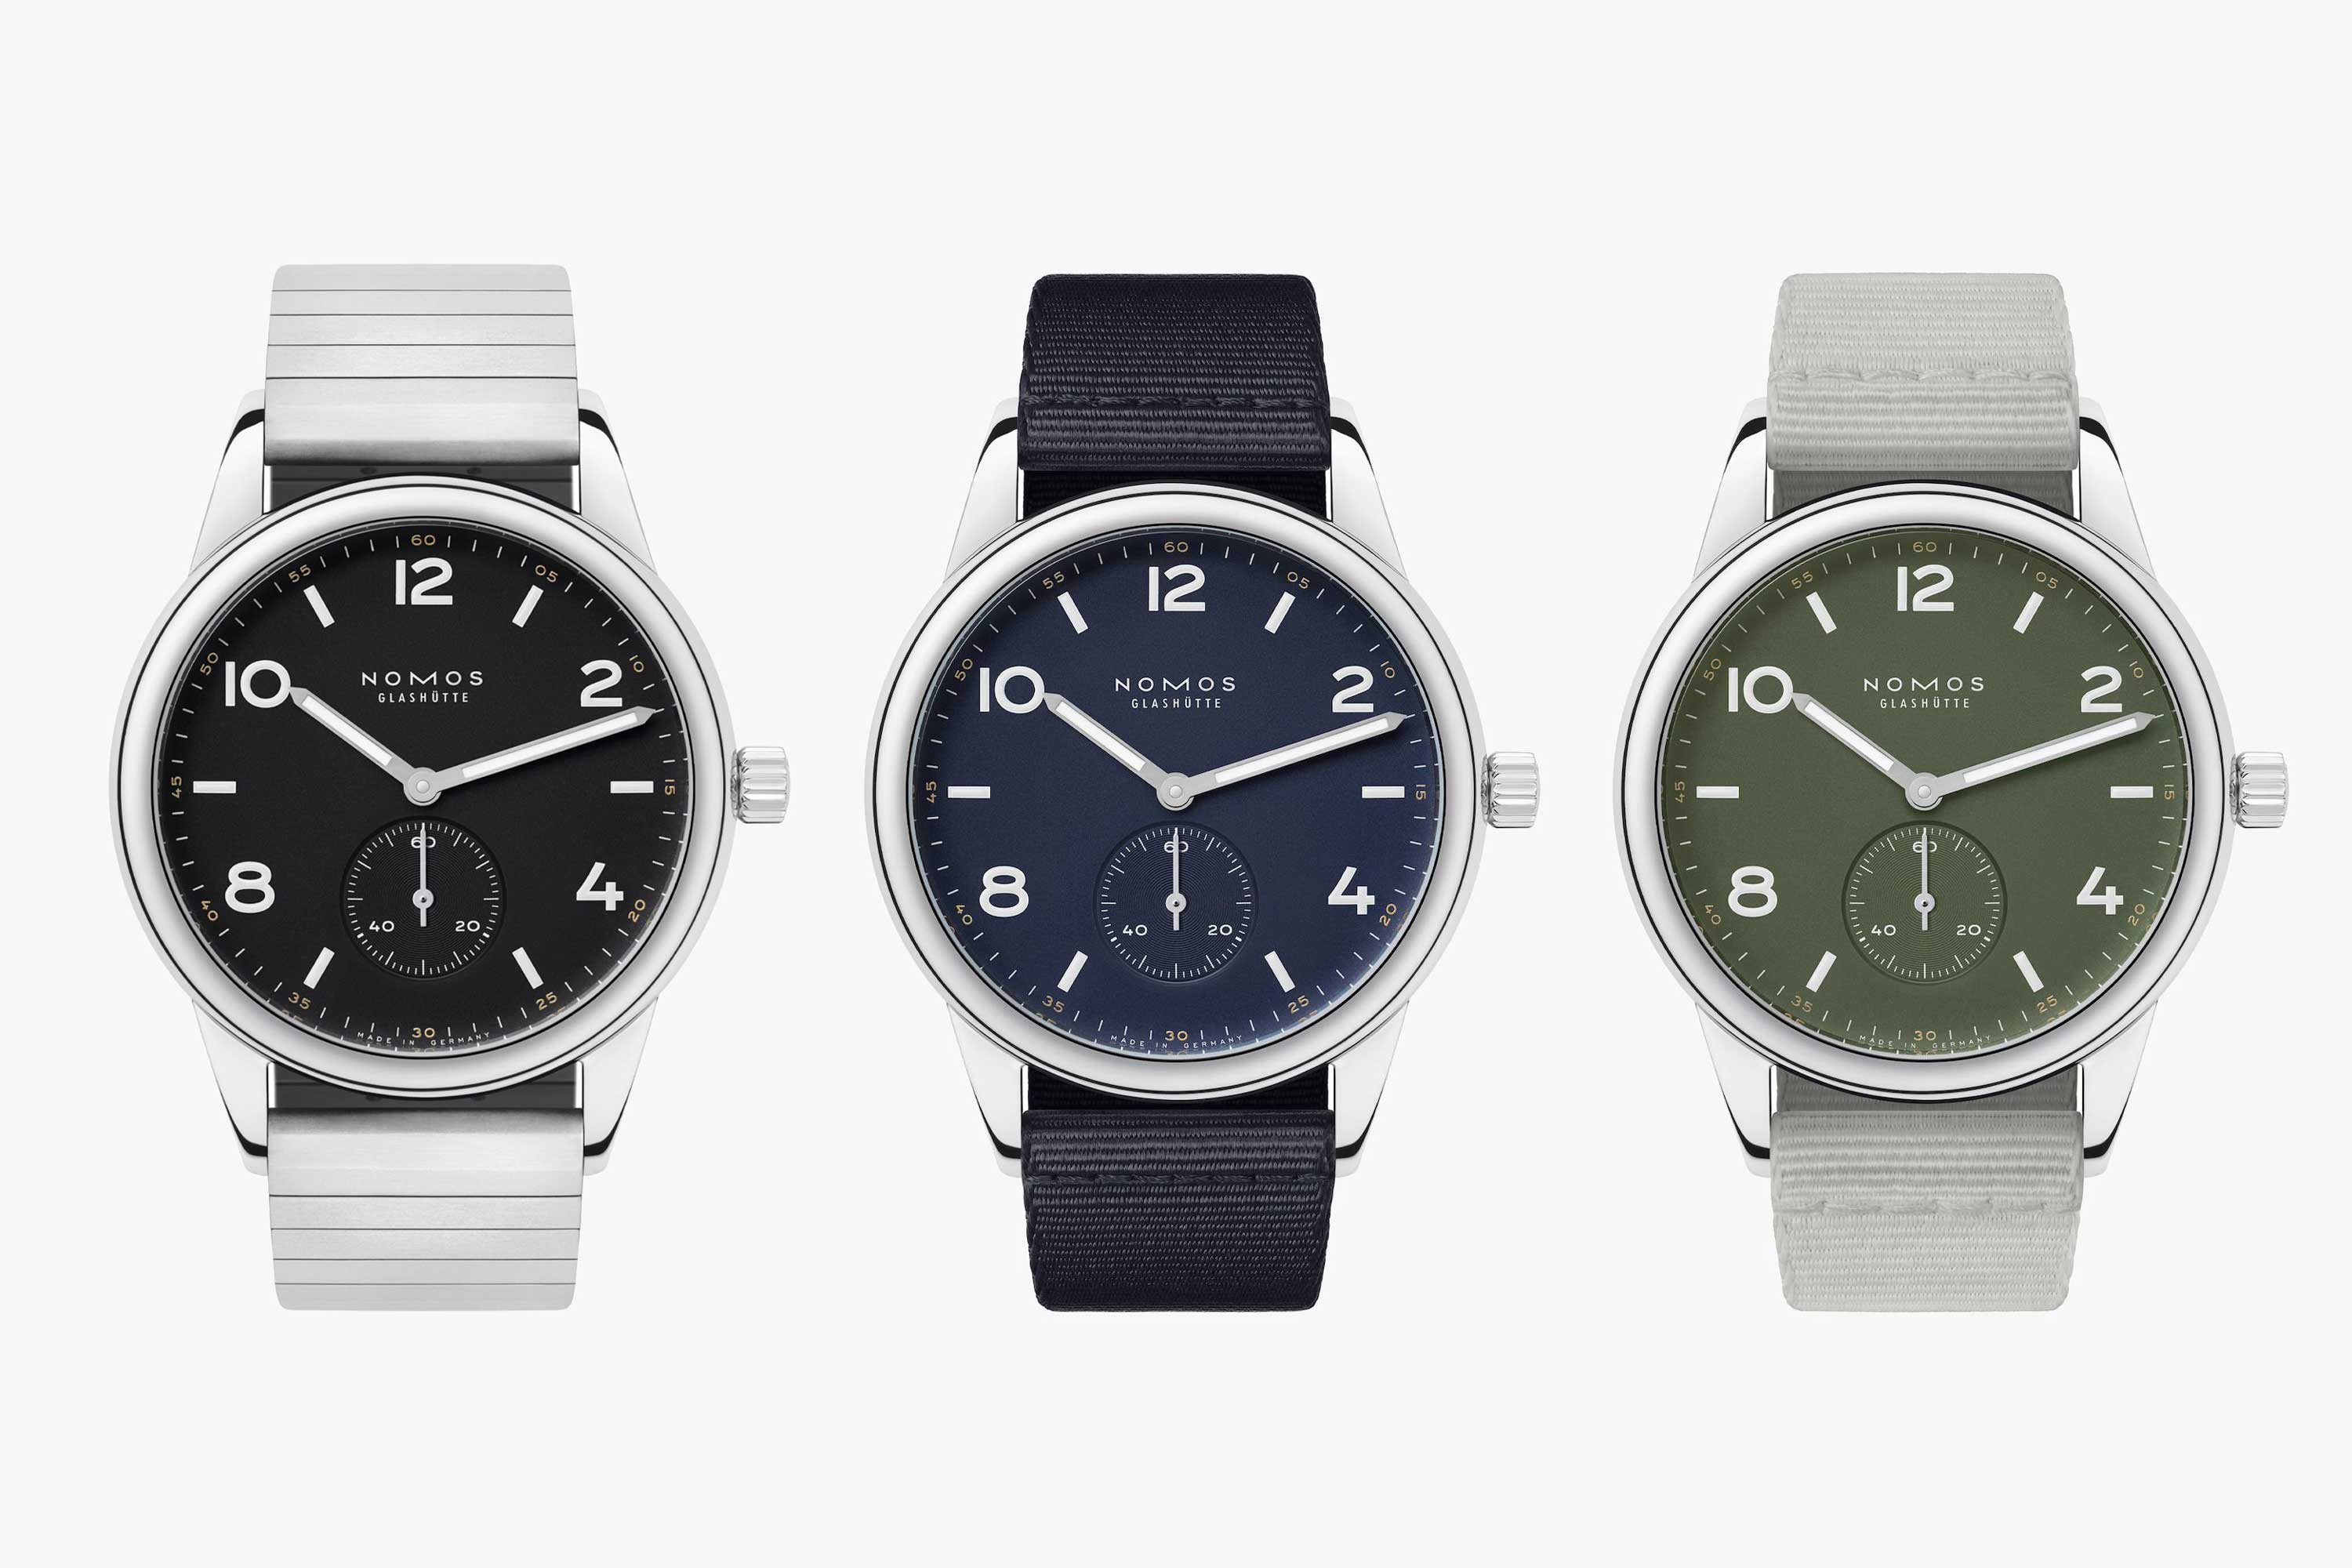 Limited to 175 pieces each, the Club Automatic is available in the colors onyx, navy and olive.